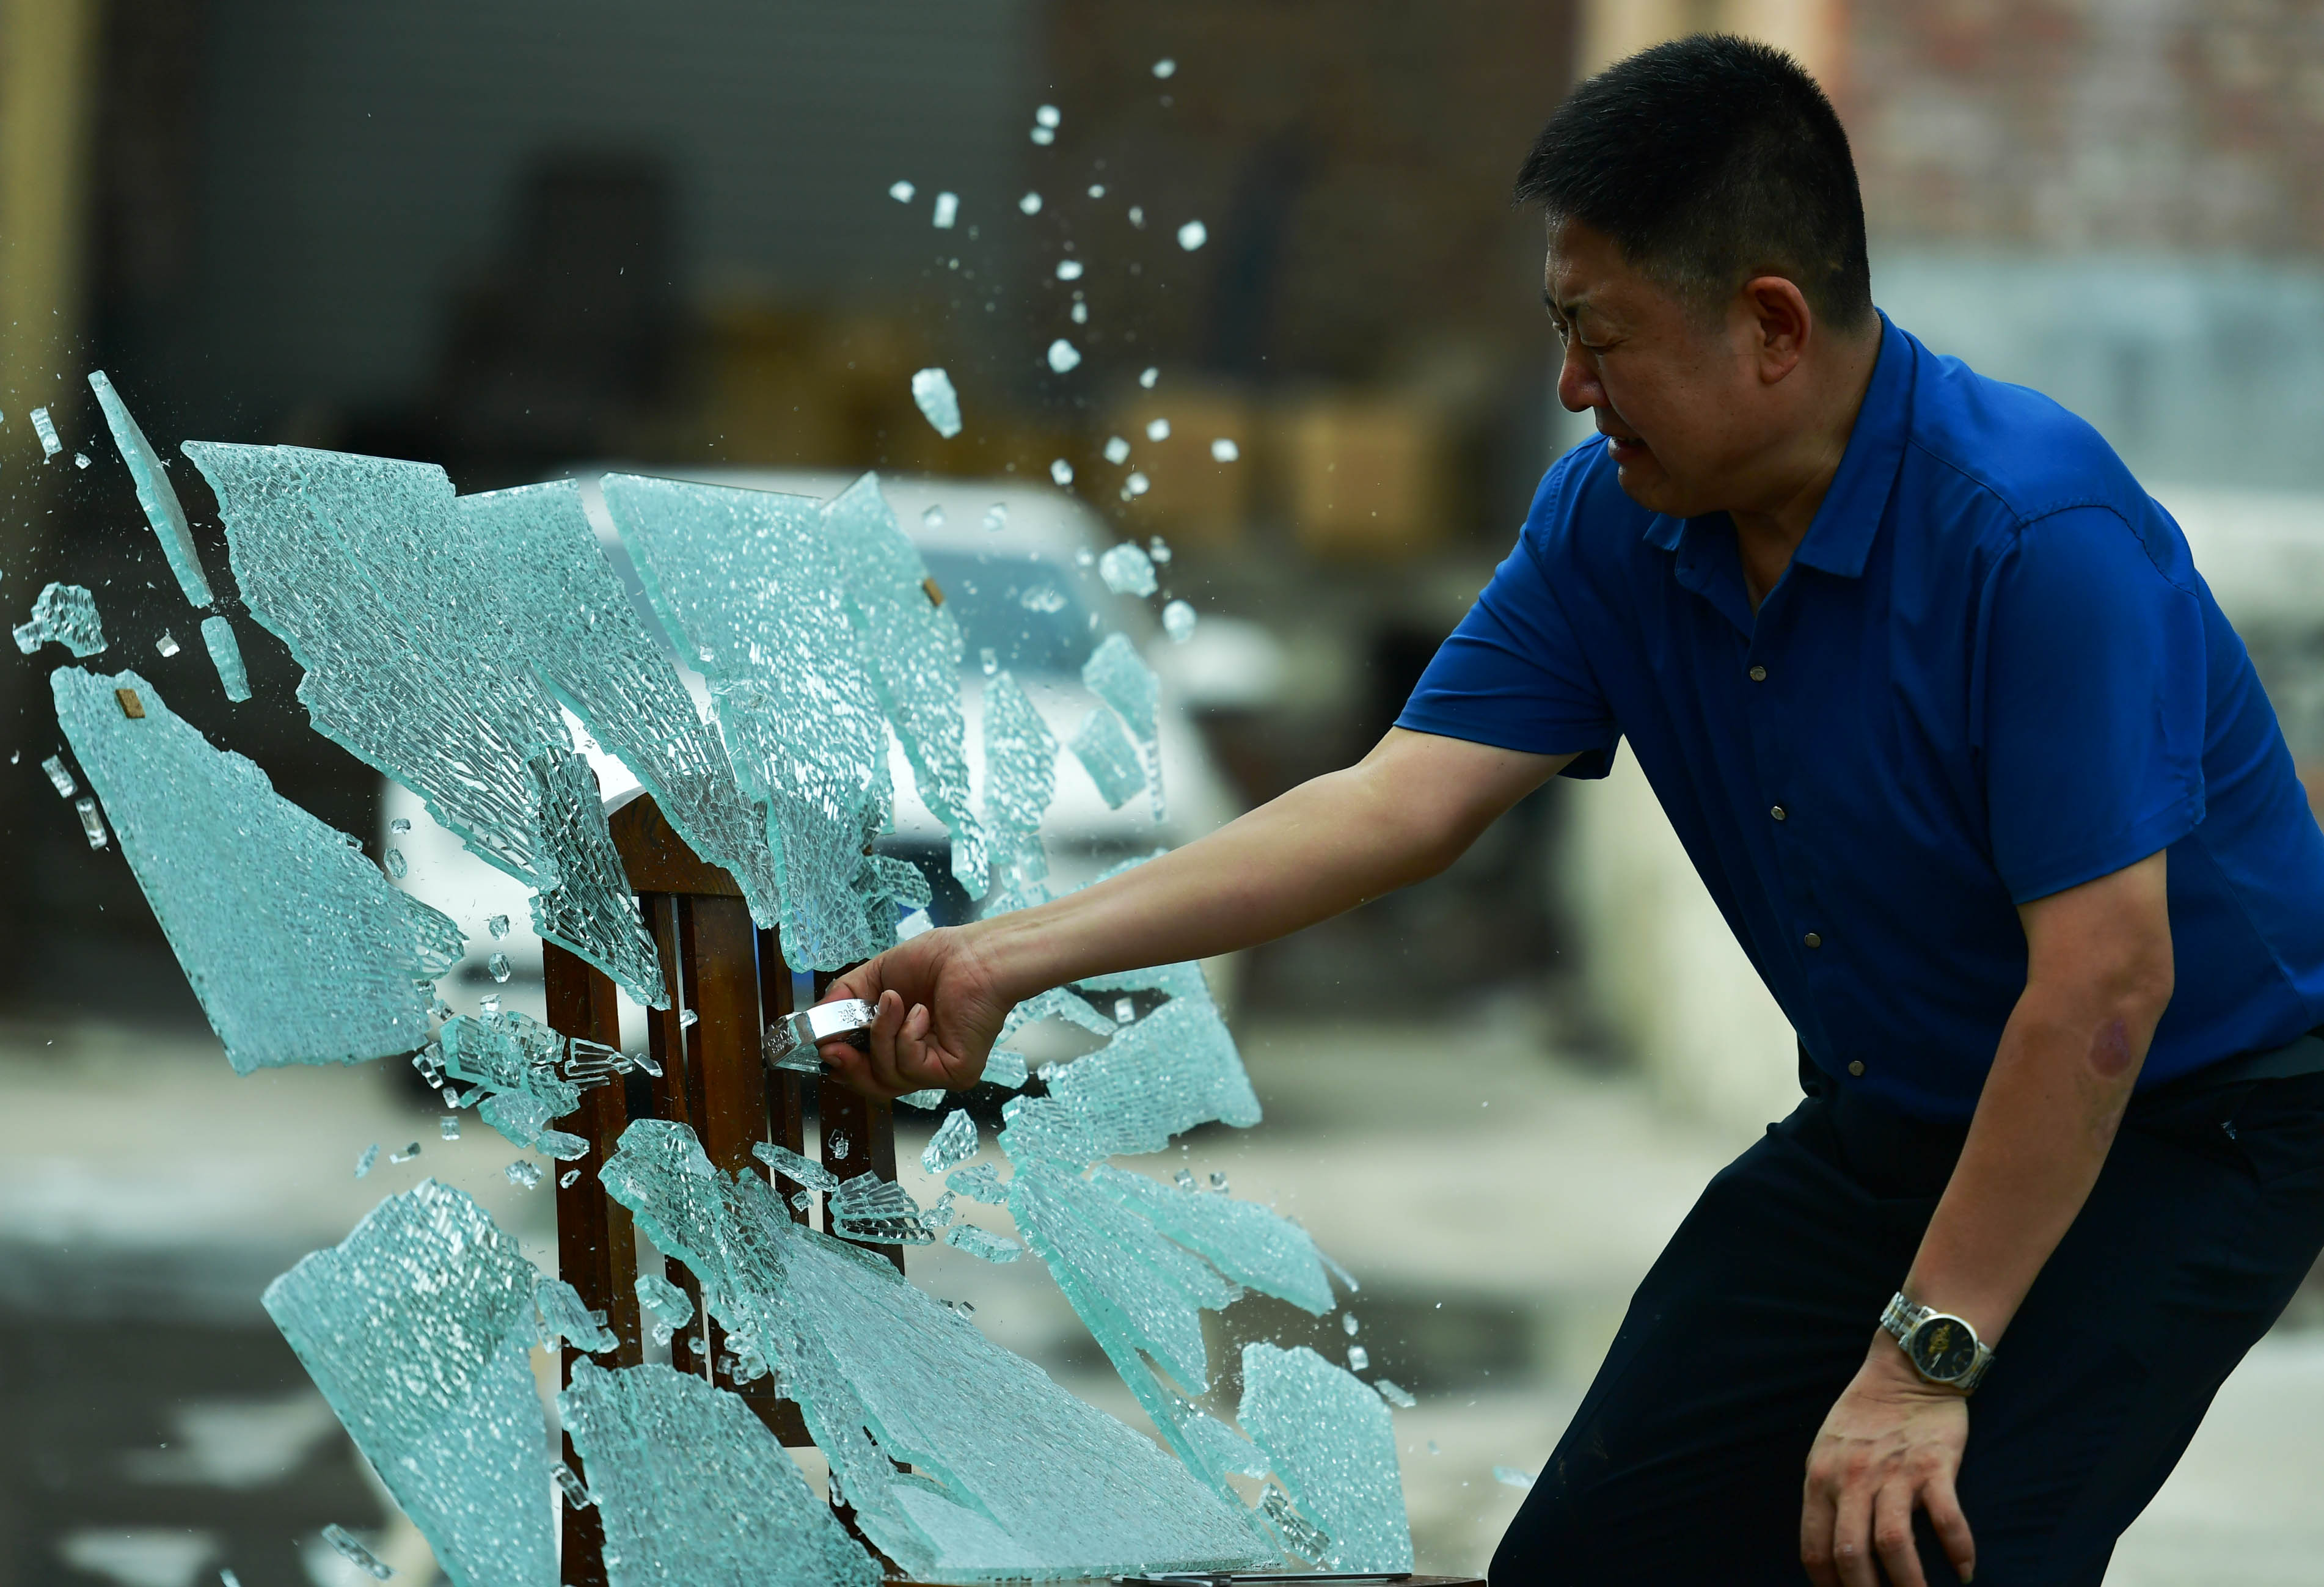 gizmo be invented to break glass in 3 seconds in Shijiazhuang,Hebei, China on 06 August 2018